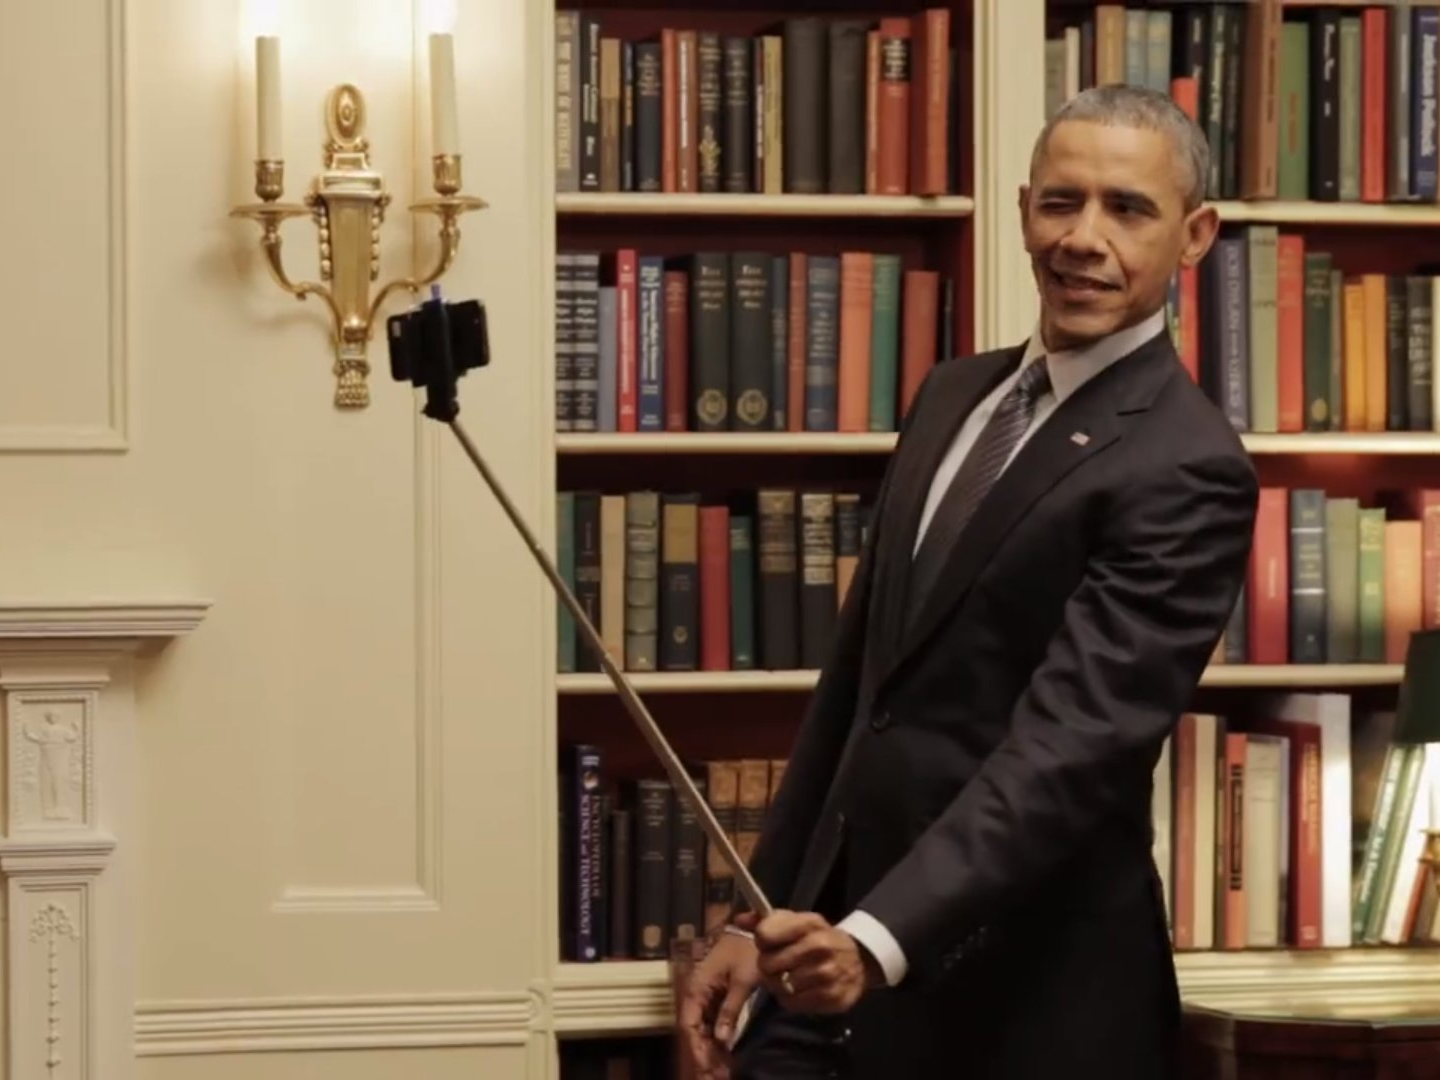 heres president obama playing with a selfie stick